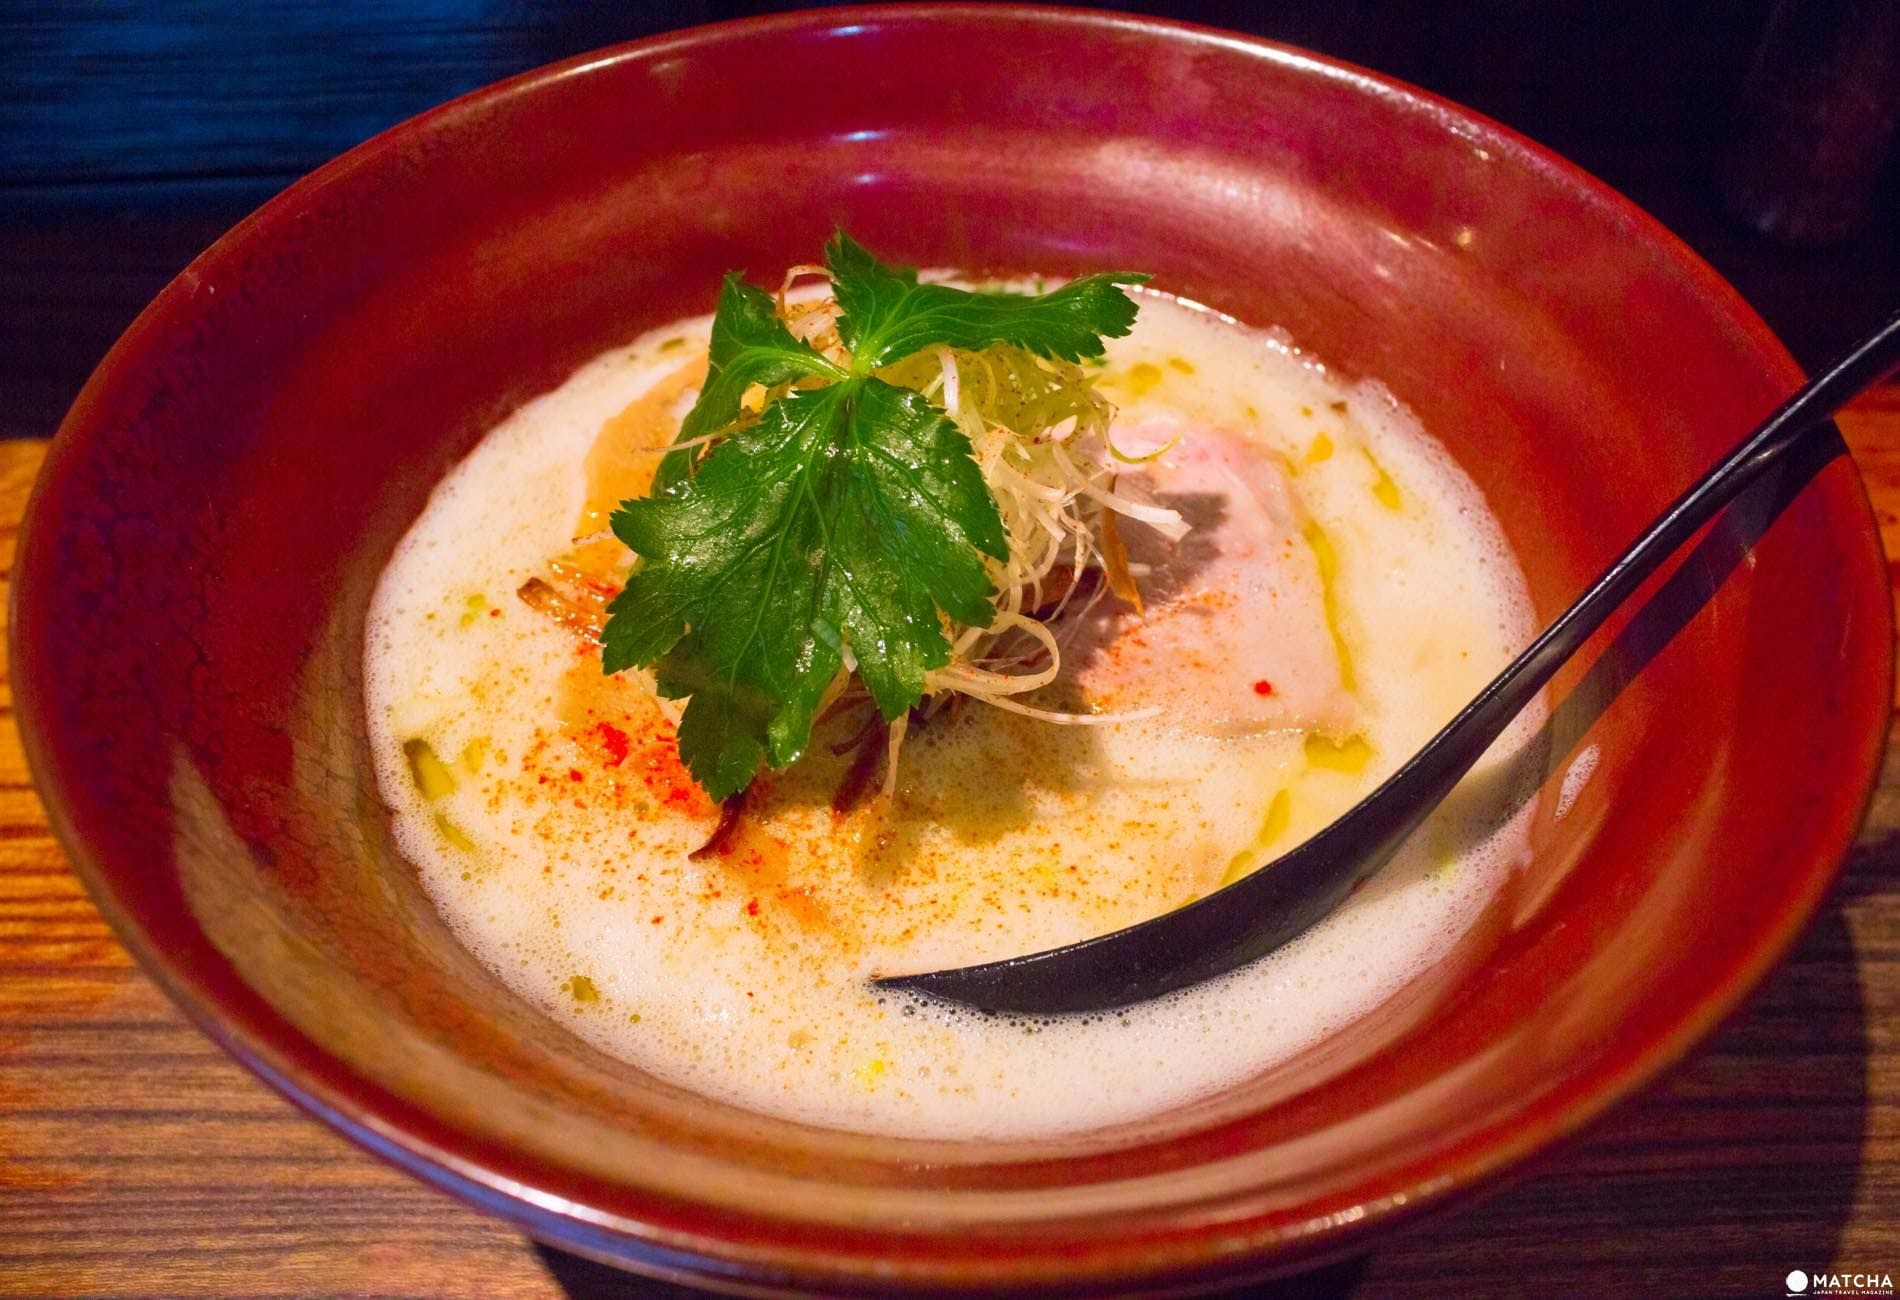 Namba Ryukishine RIZE's Chicken Simmered Shio Noodles